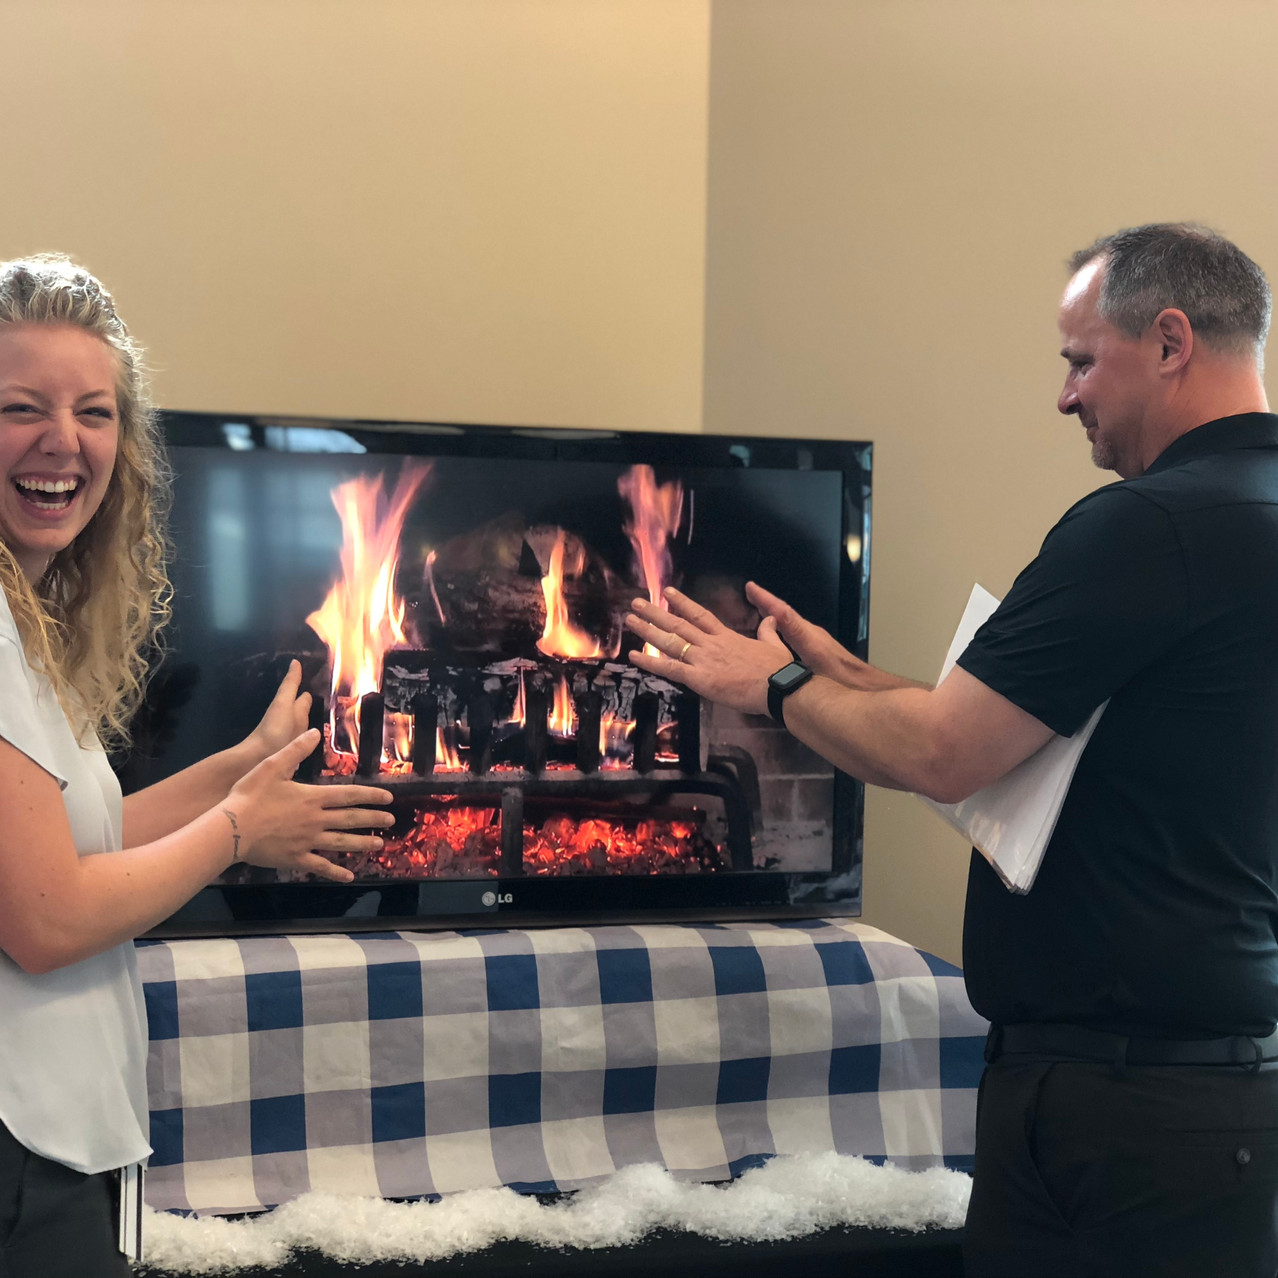 Fake fire on the TV in the cafe.